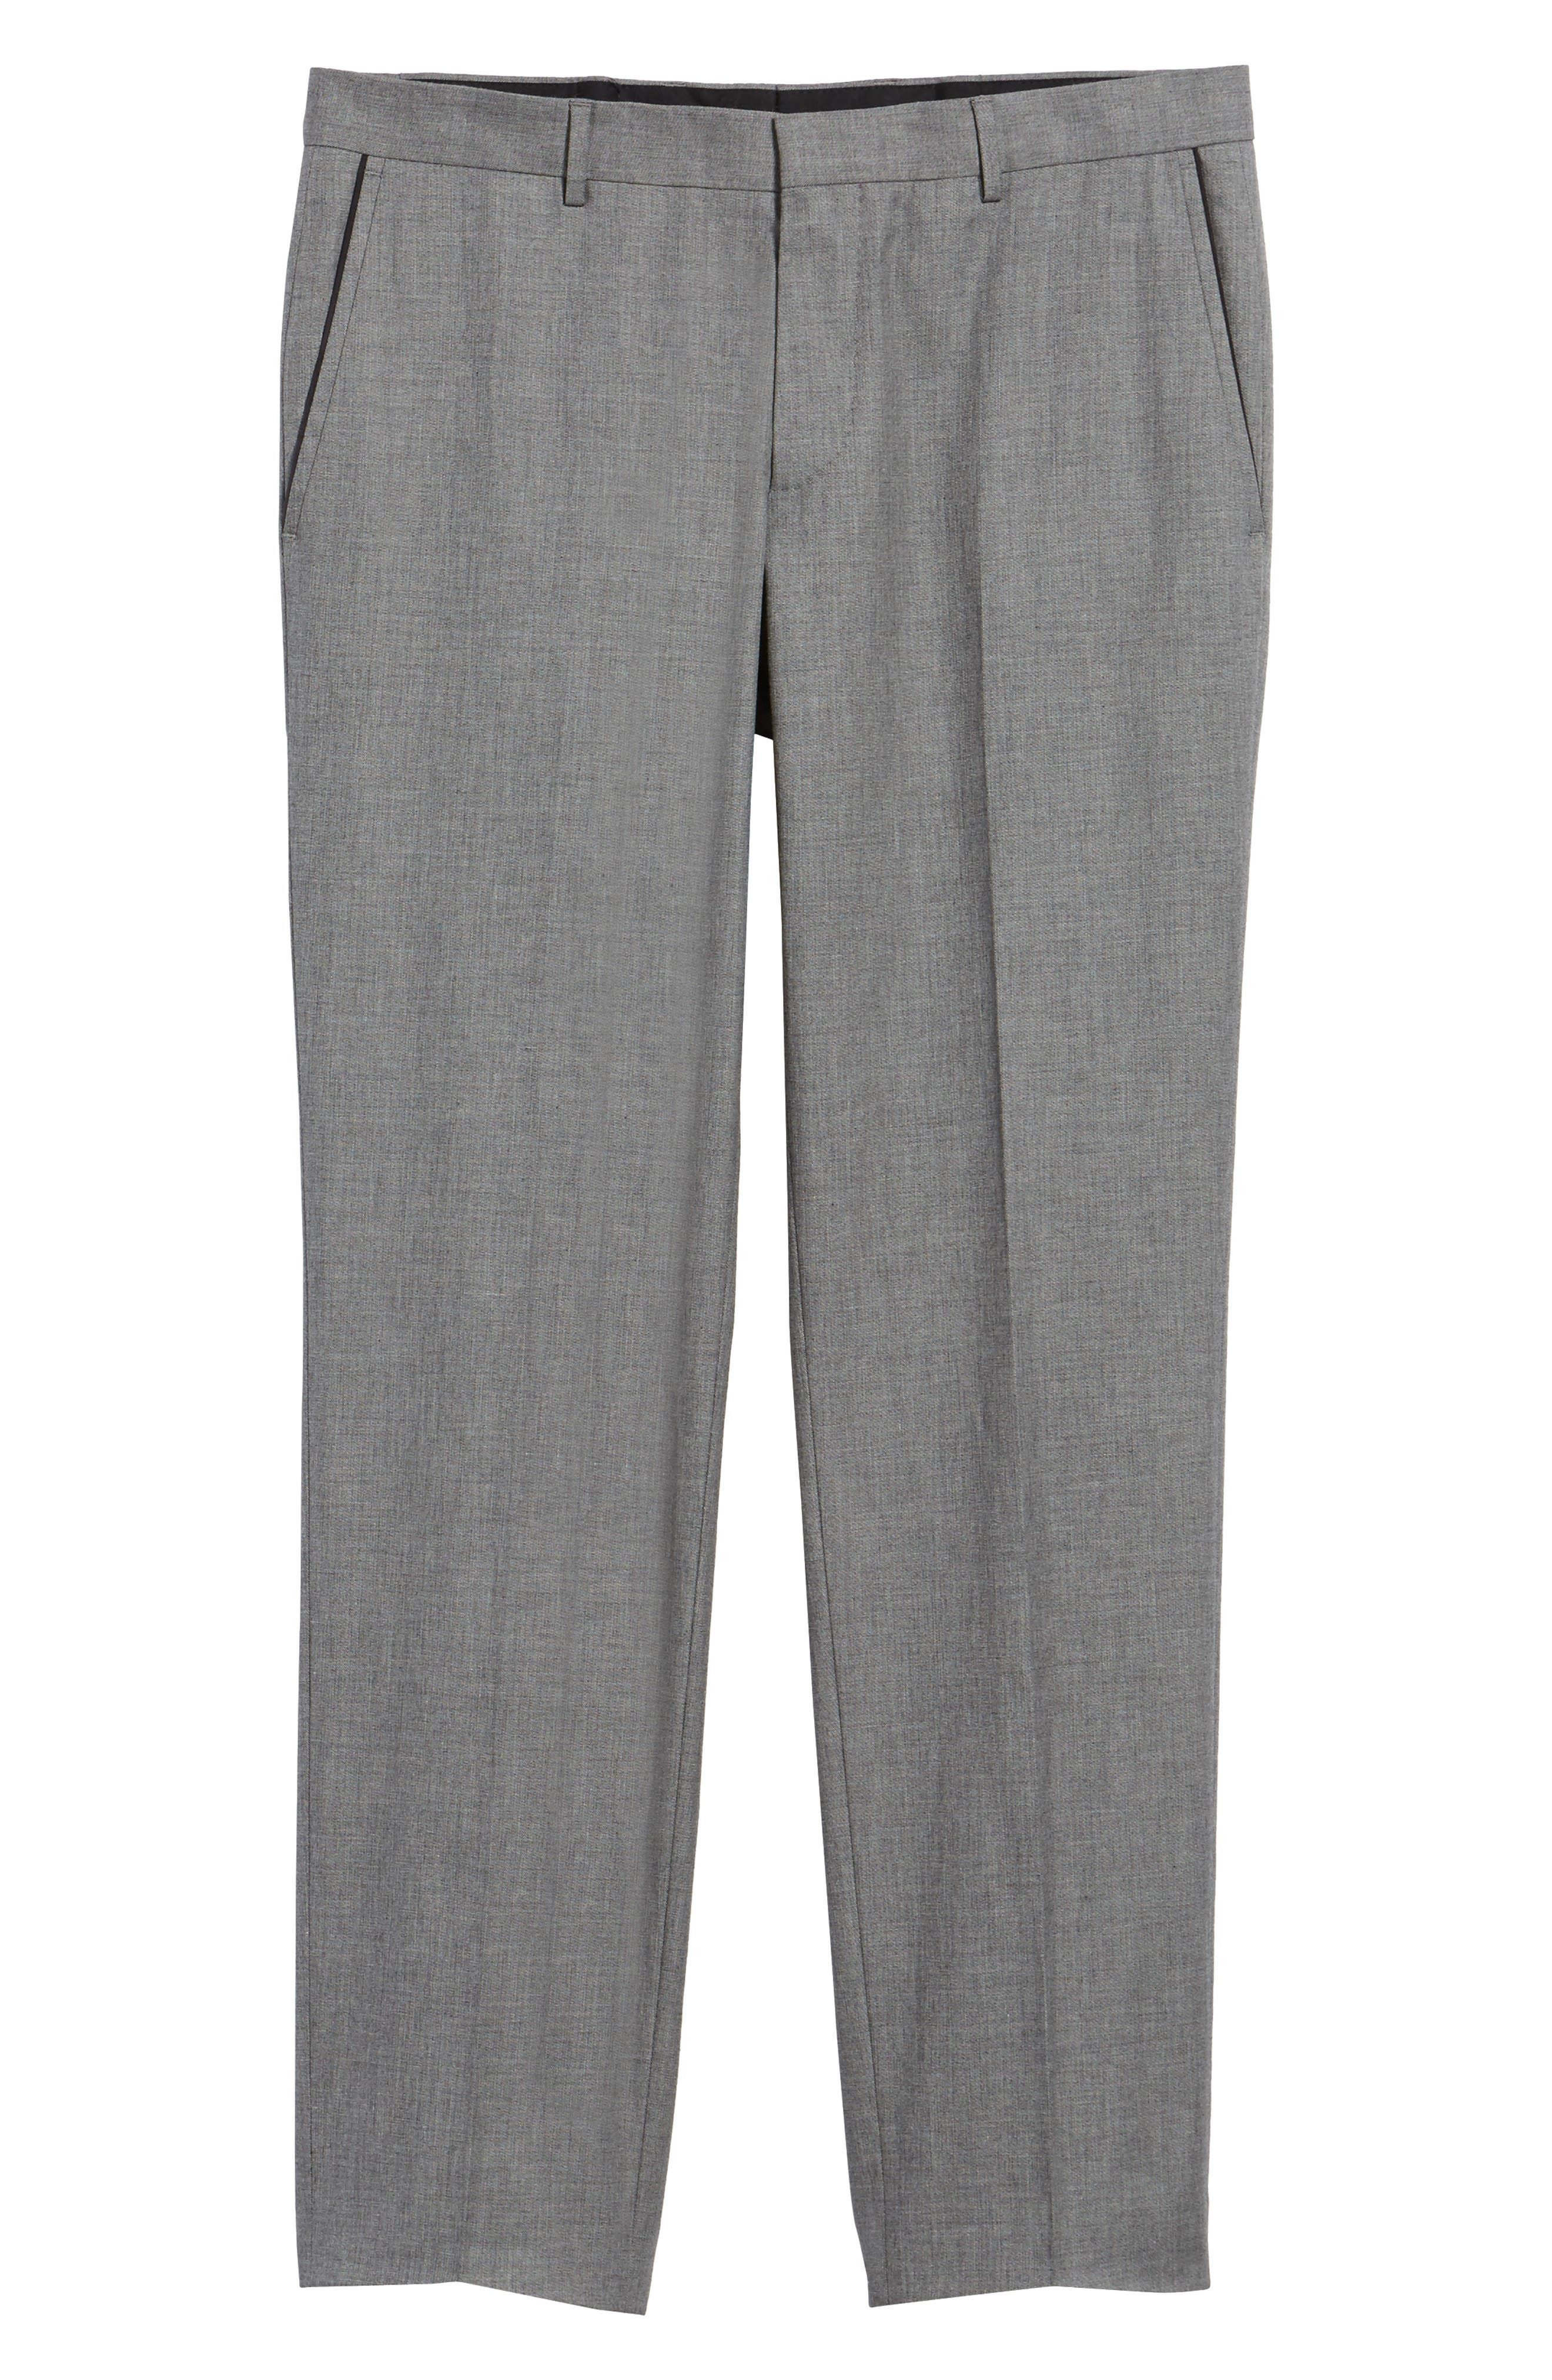 Blake Flat Front Trim Fit Solid Wool Trousers,                             Alternate thumbnail 7, color,                             Open Grey